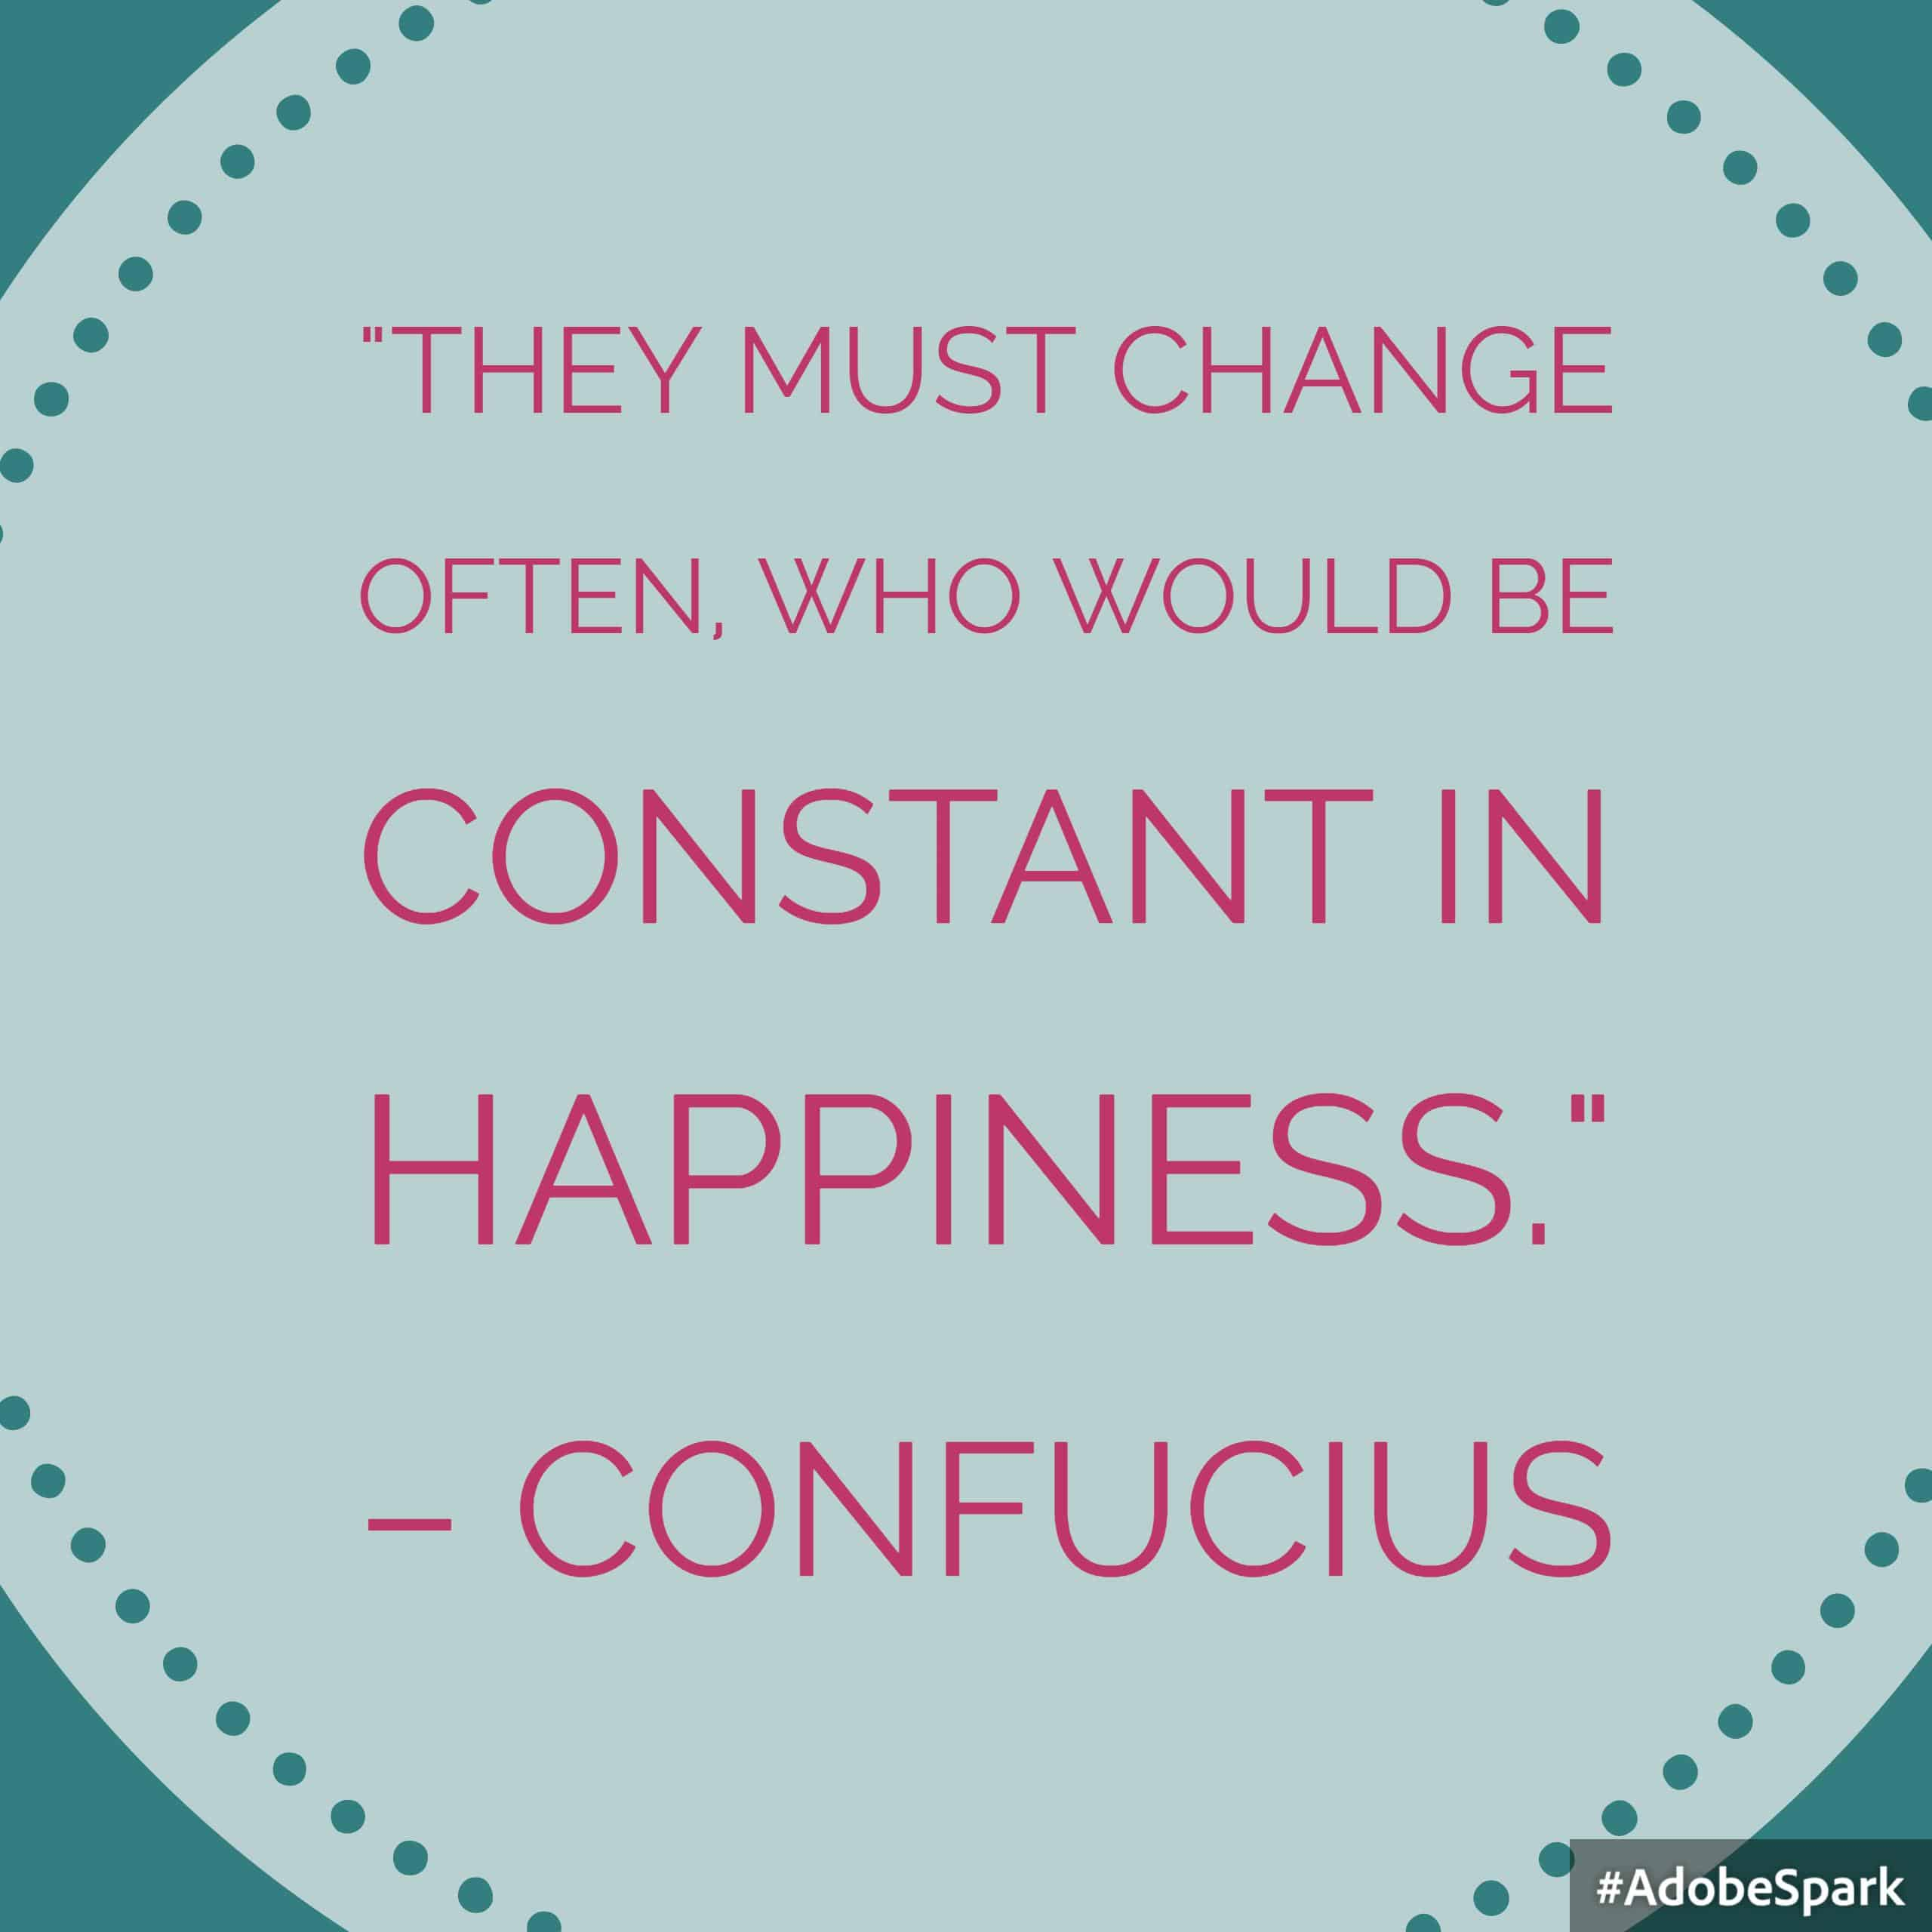 Confucius they must change often quotes in dark pink text over pale blue circle on teal background